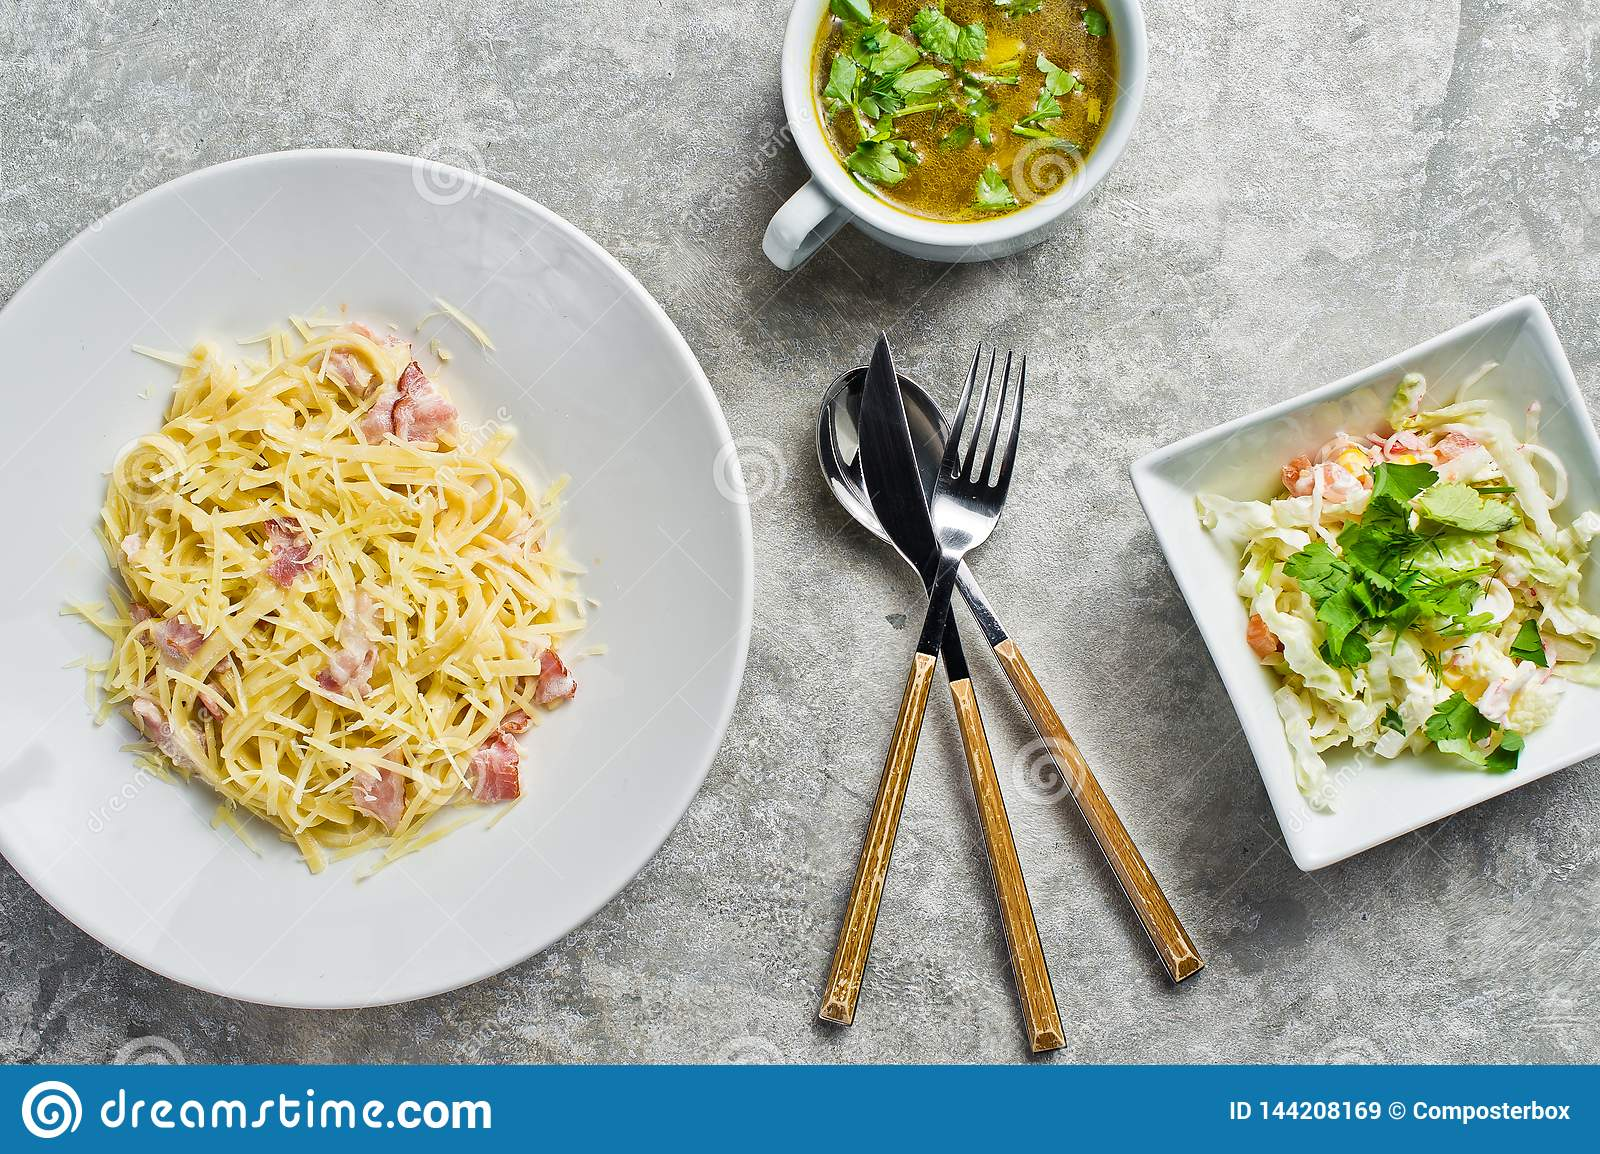 Business lunch menu, pasta Carbonara, green salad and chicken soup.